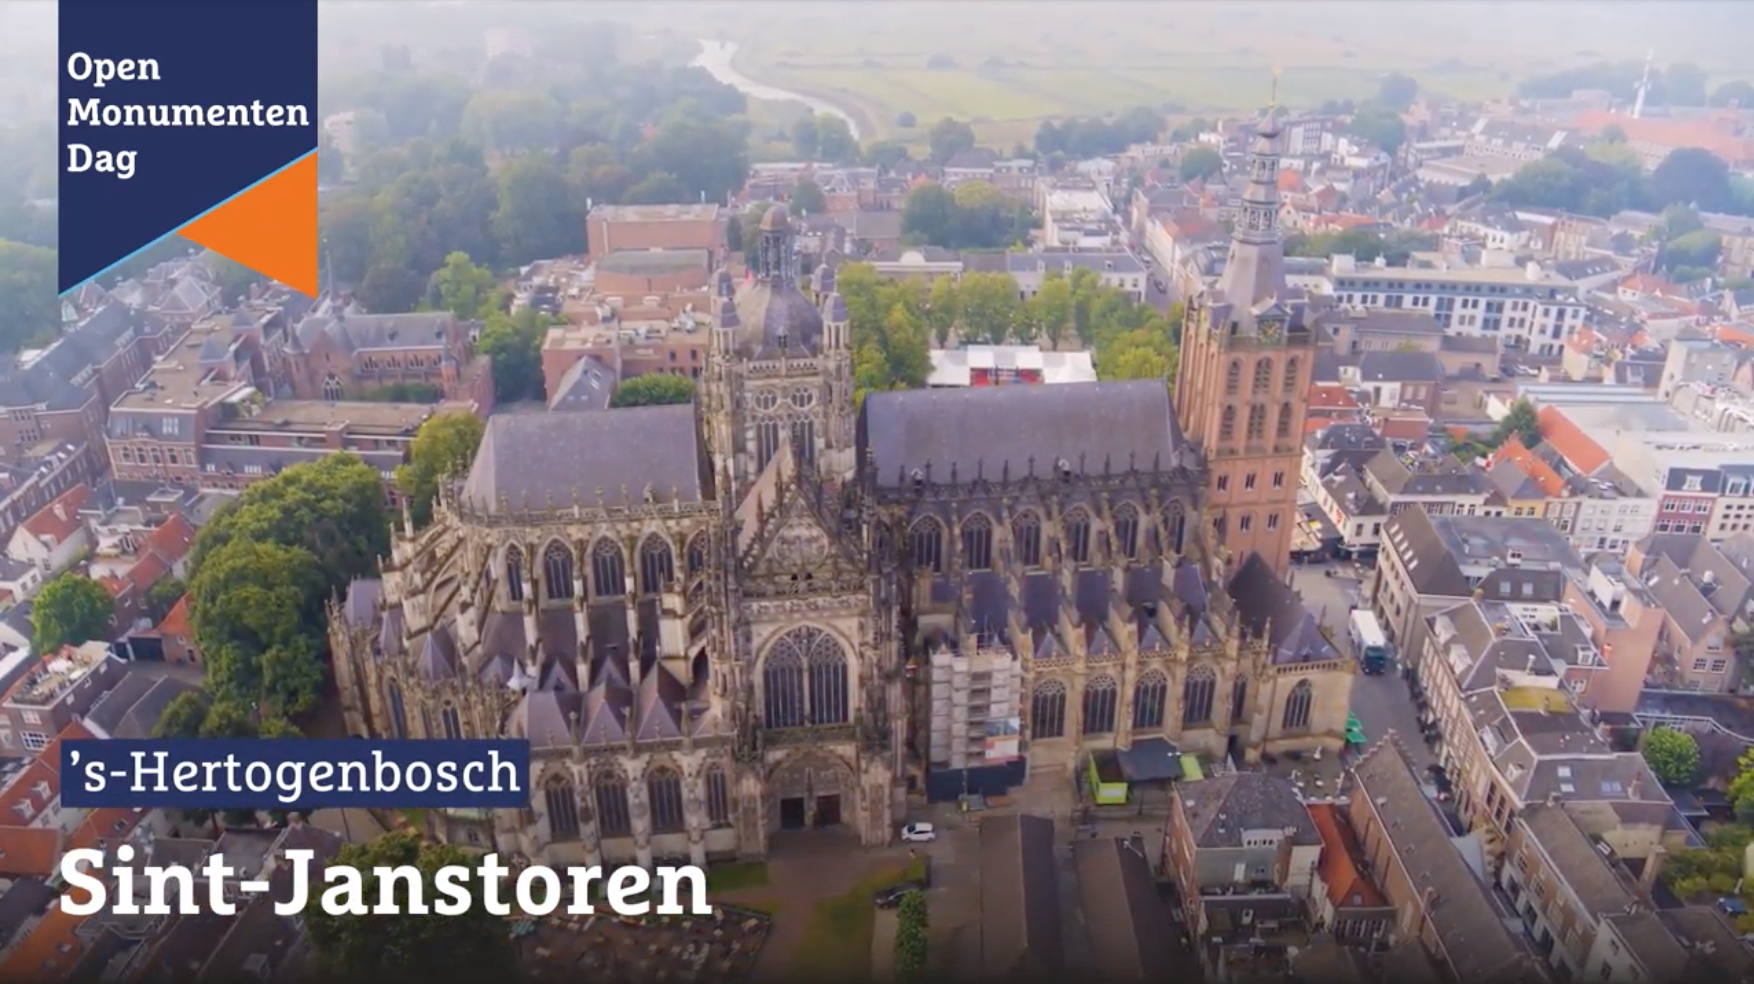 Sint-Janstoren in 's-Hertogenbosch (credit, Heritage Departement 's-Hertogenbosch, video screenshot via YouTube)